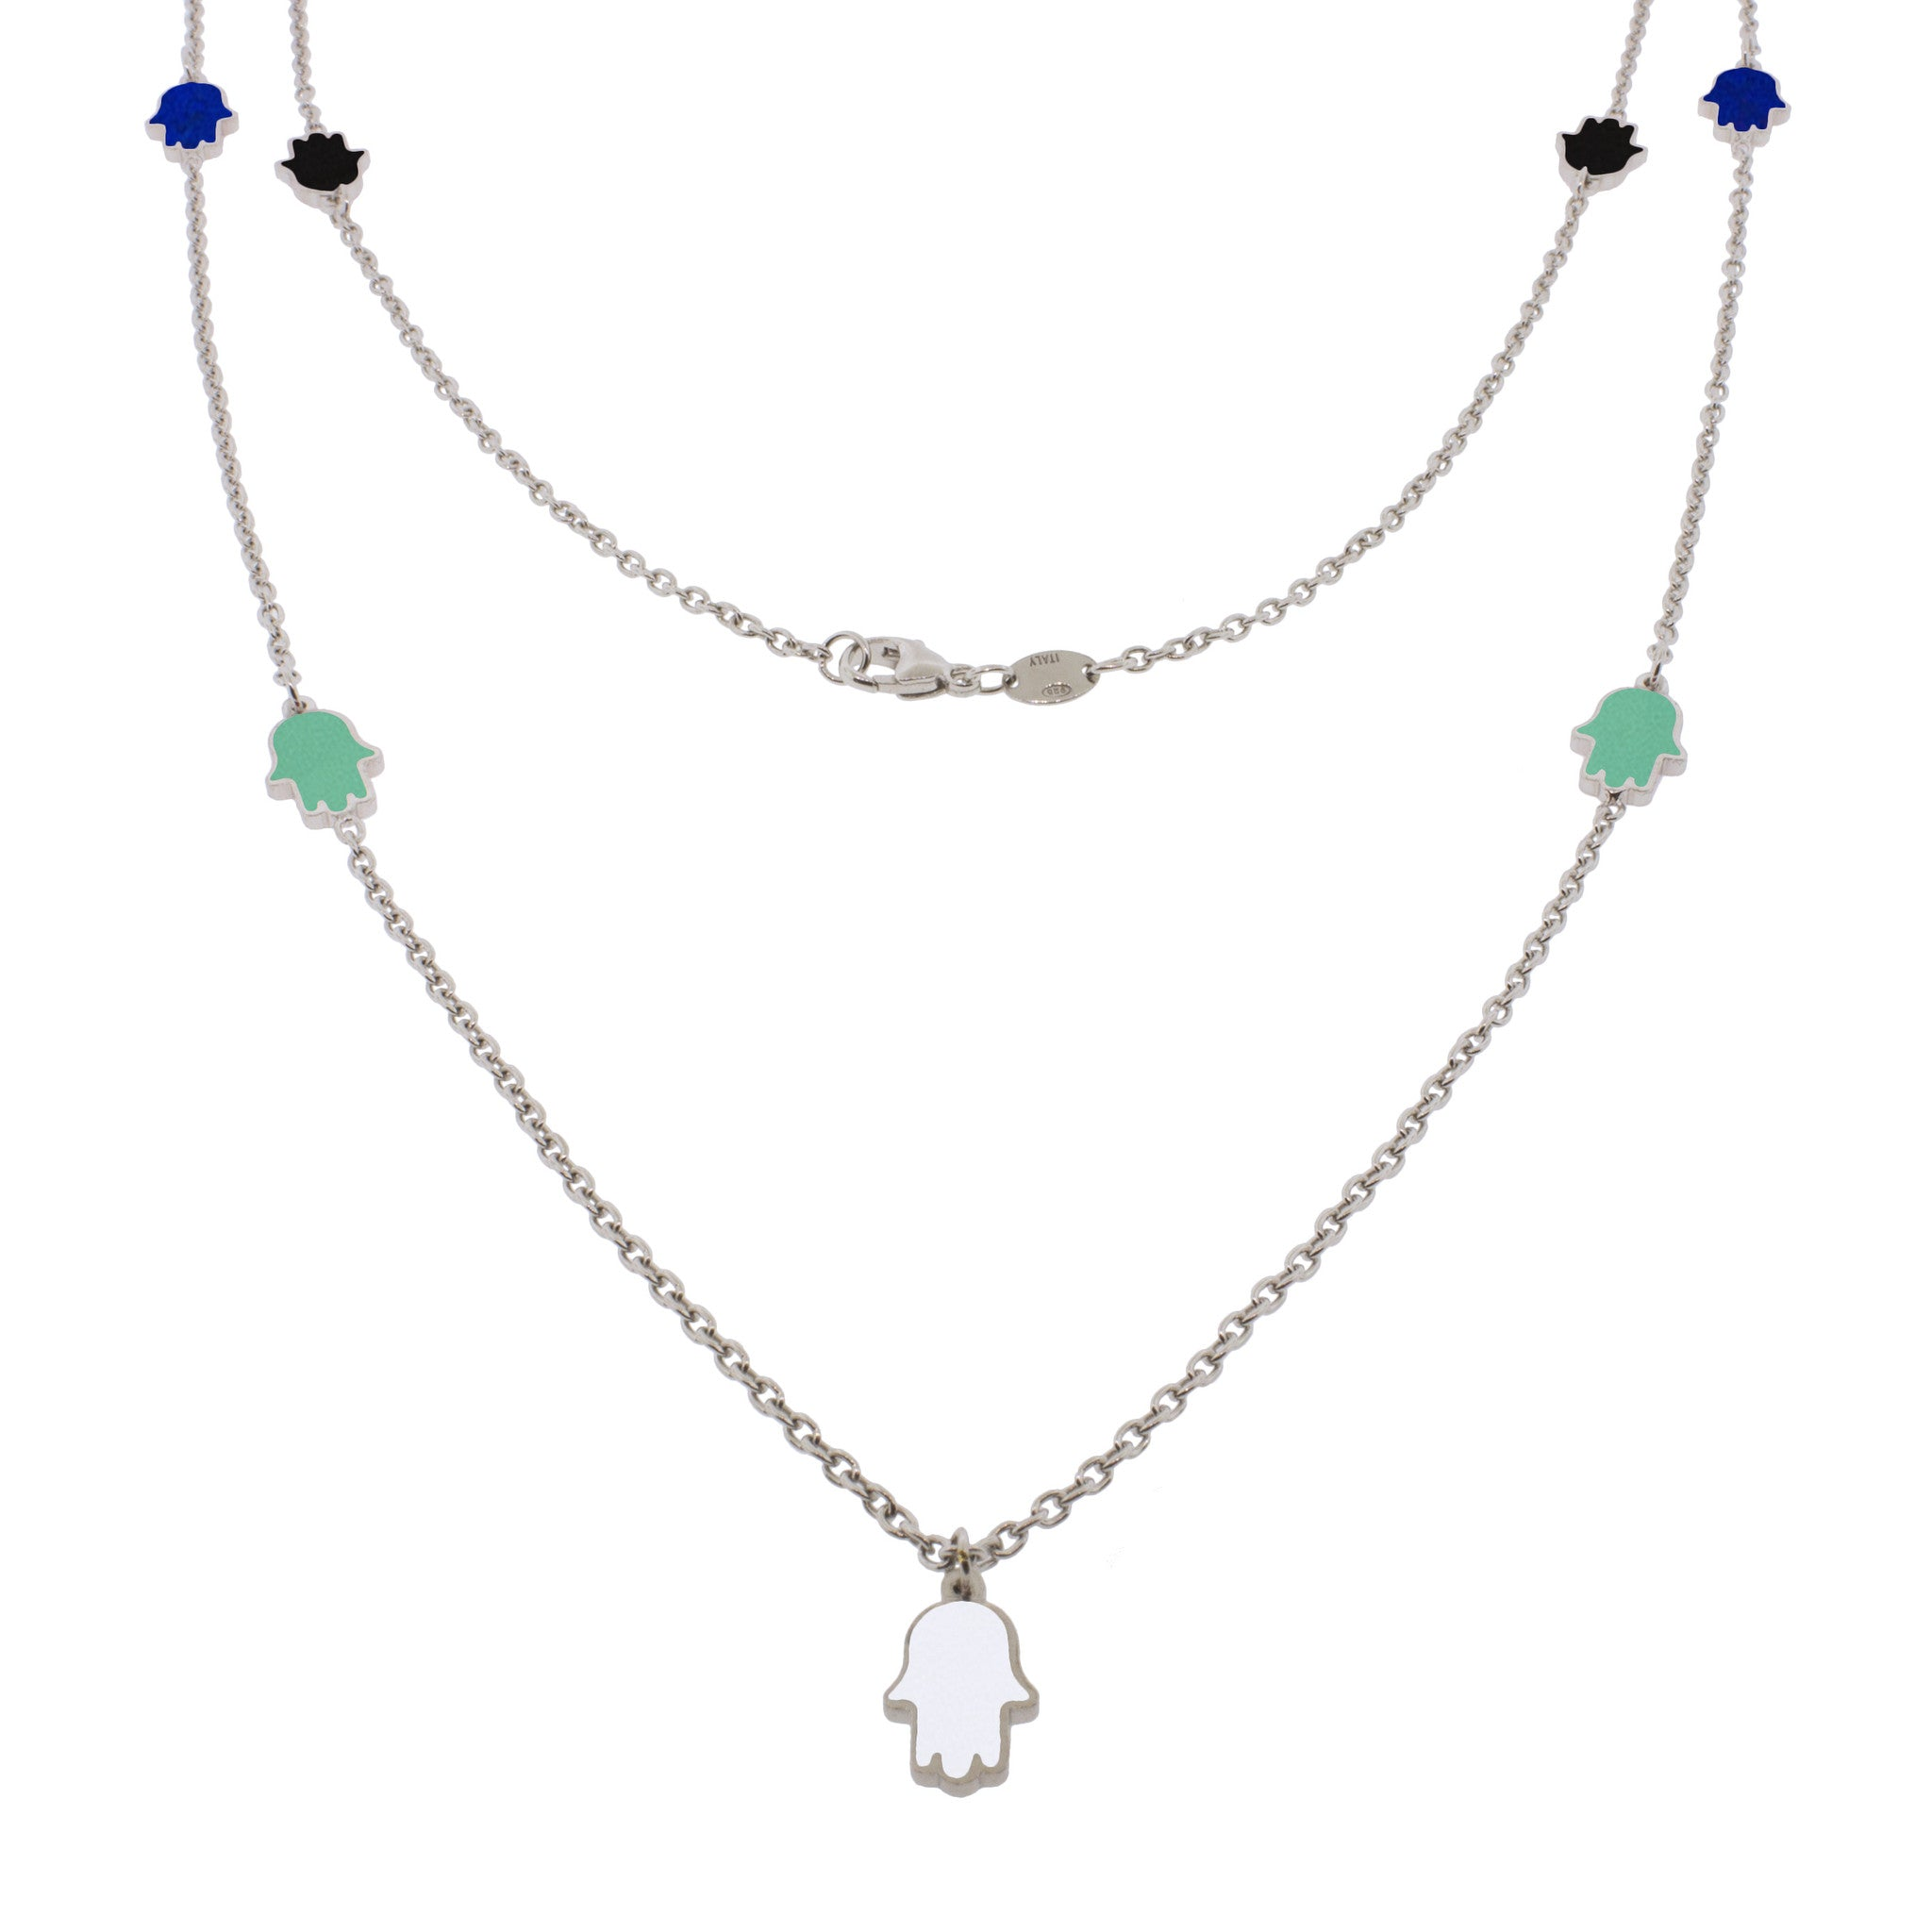 32-inch Touch of Luck Sterling Silver Necklace - Color Splash